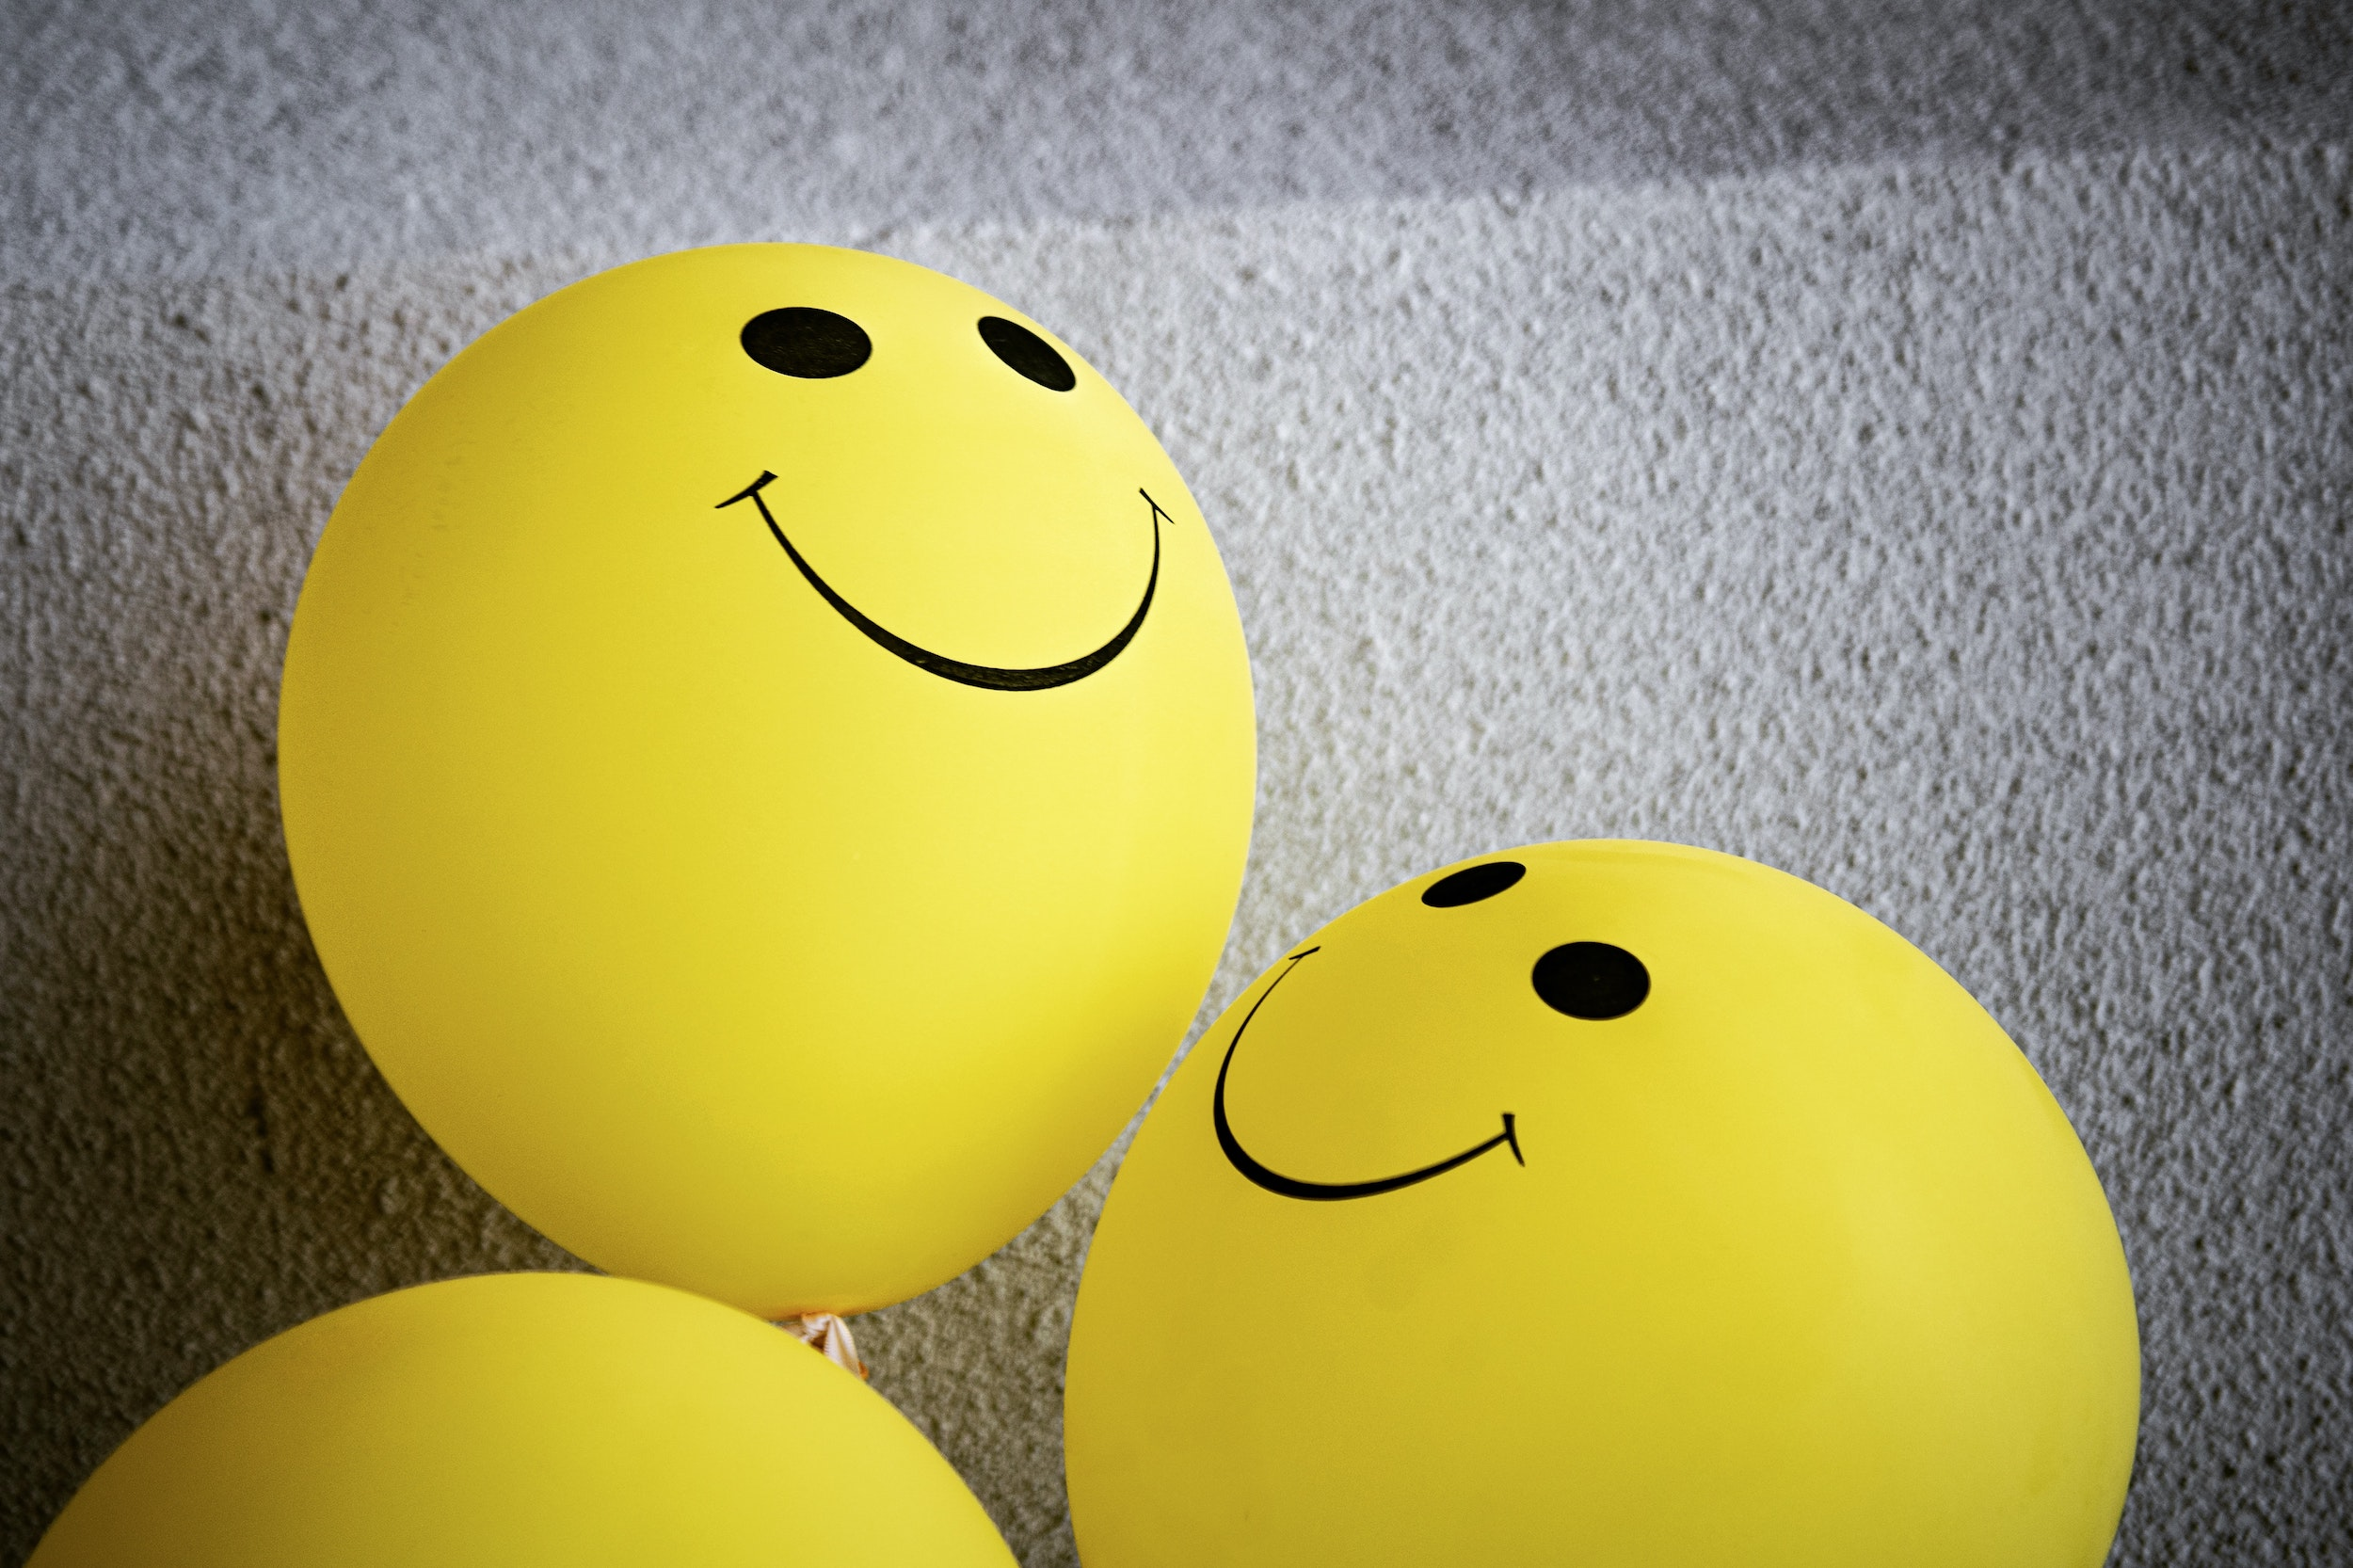 Three yellow balloons with smiley faces on them against a grey backdrop. Photo courtesy of Tim Mossholder on Unsplash.